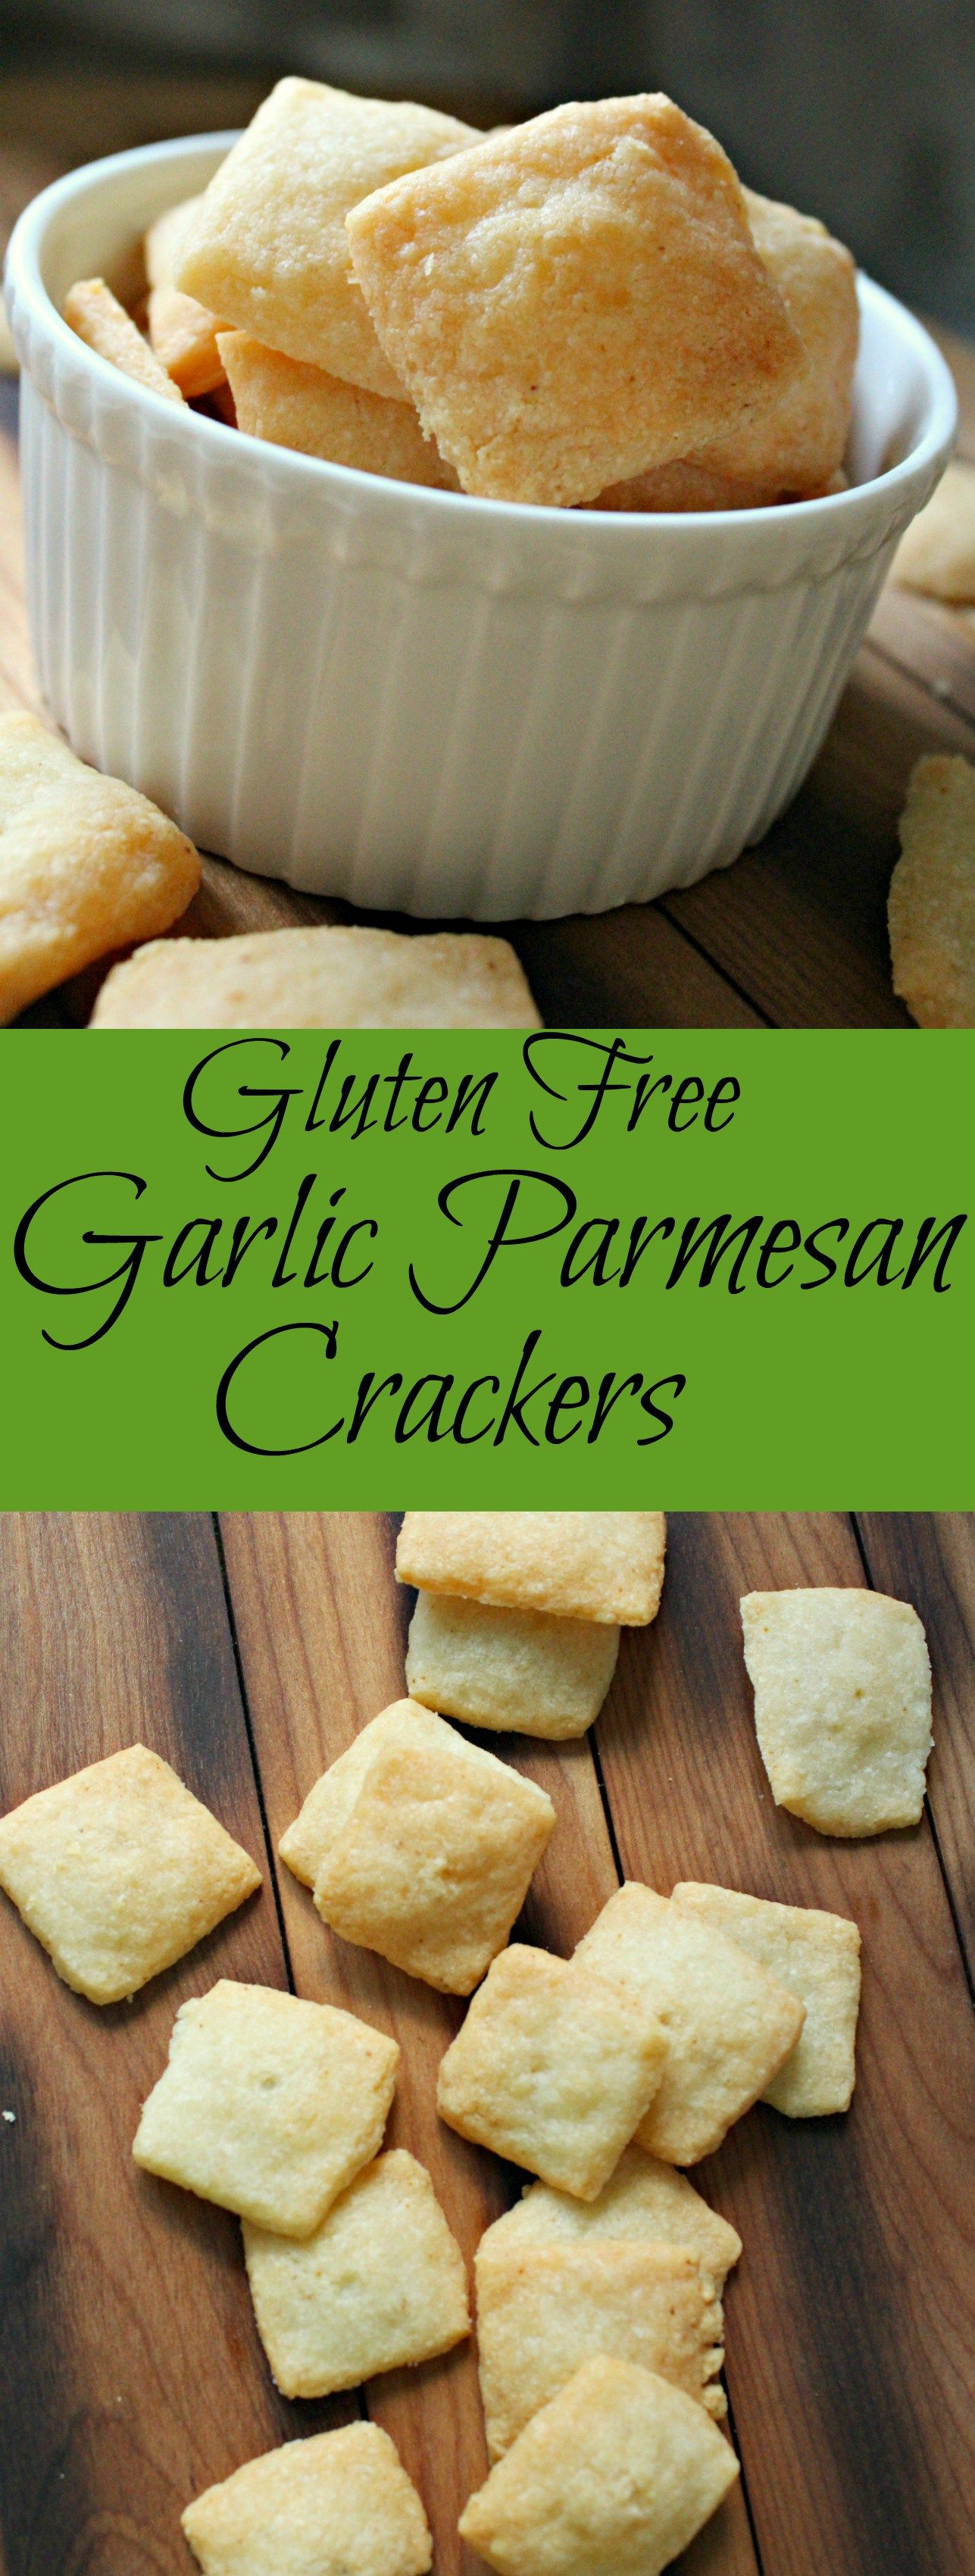 Gluten Free Garlic Parmesan Crackers Foods With Gluten Gluten